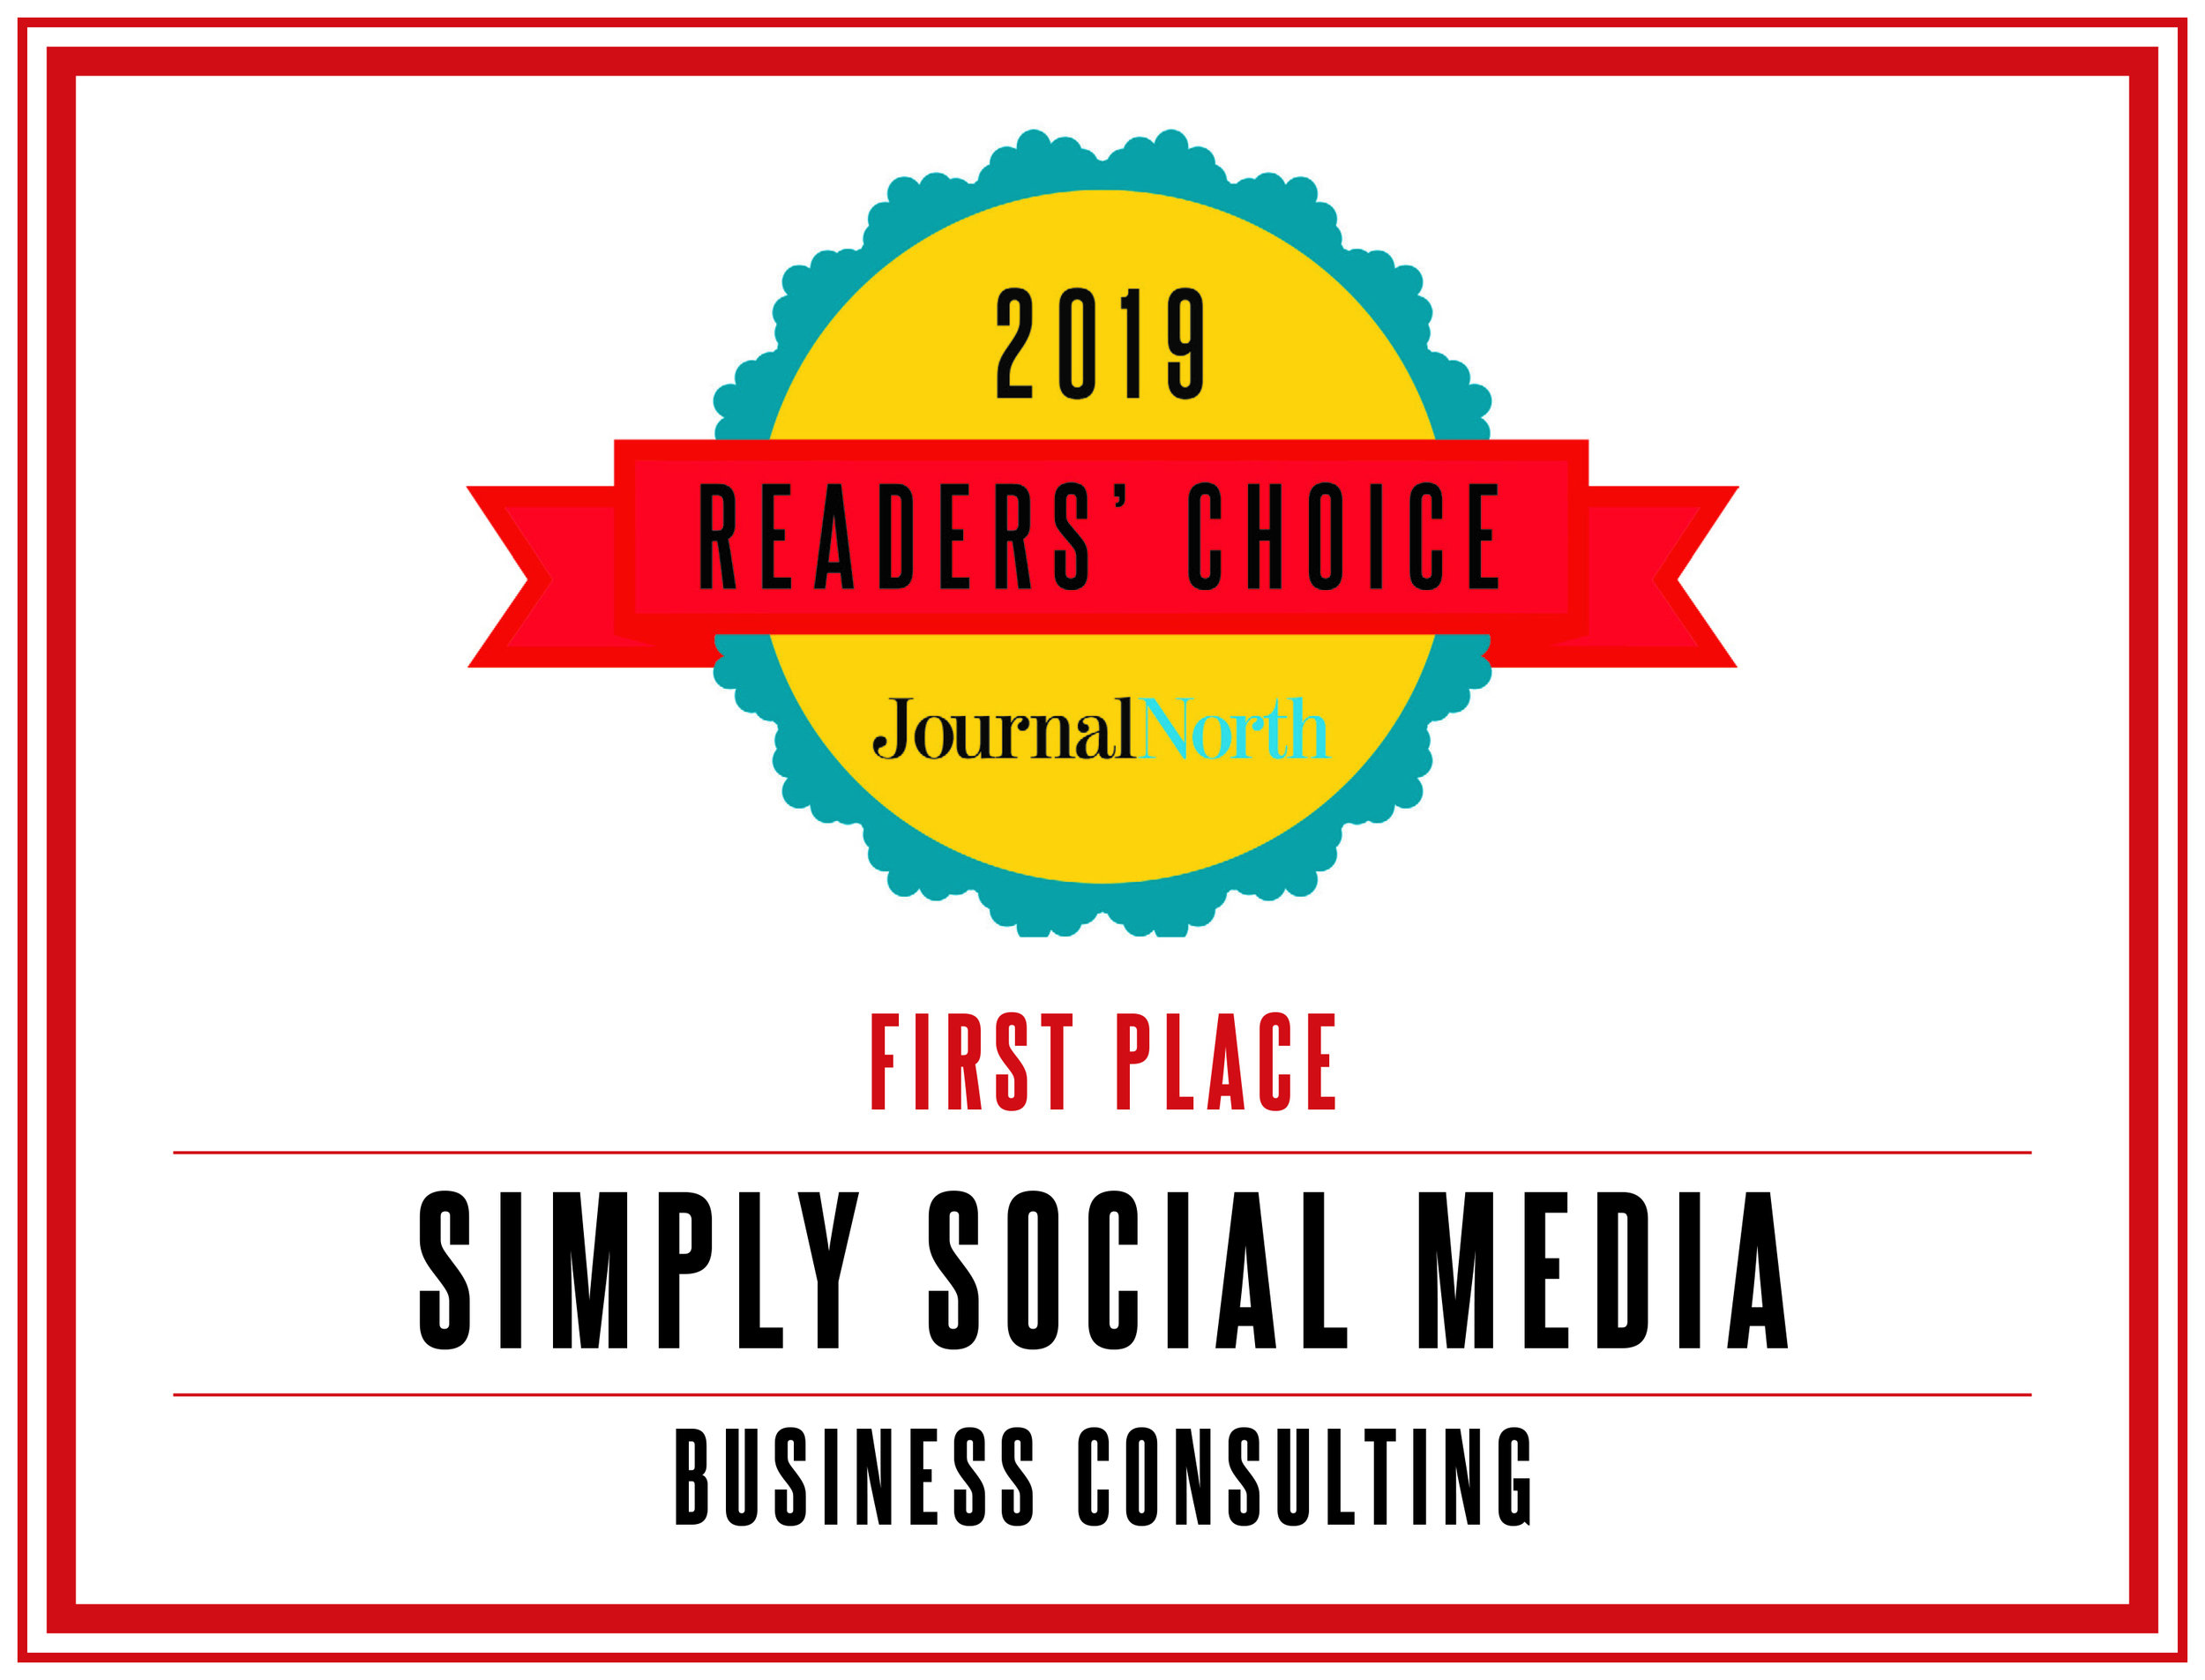 Readers'Choice'19_Simply Social Media.jpg